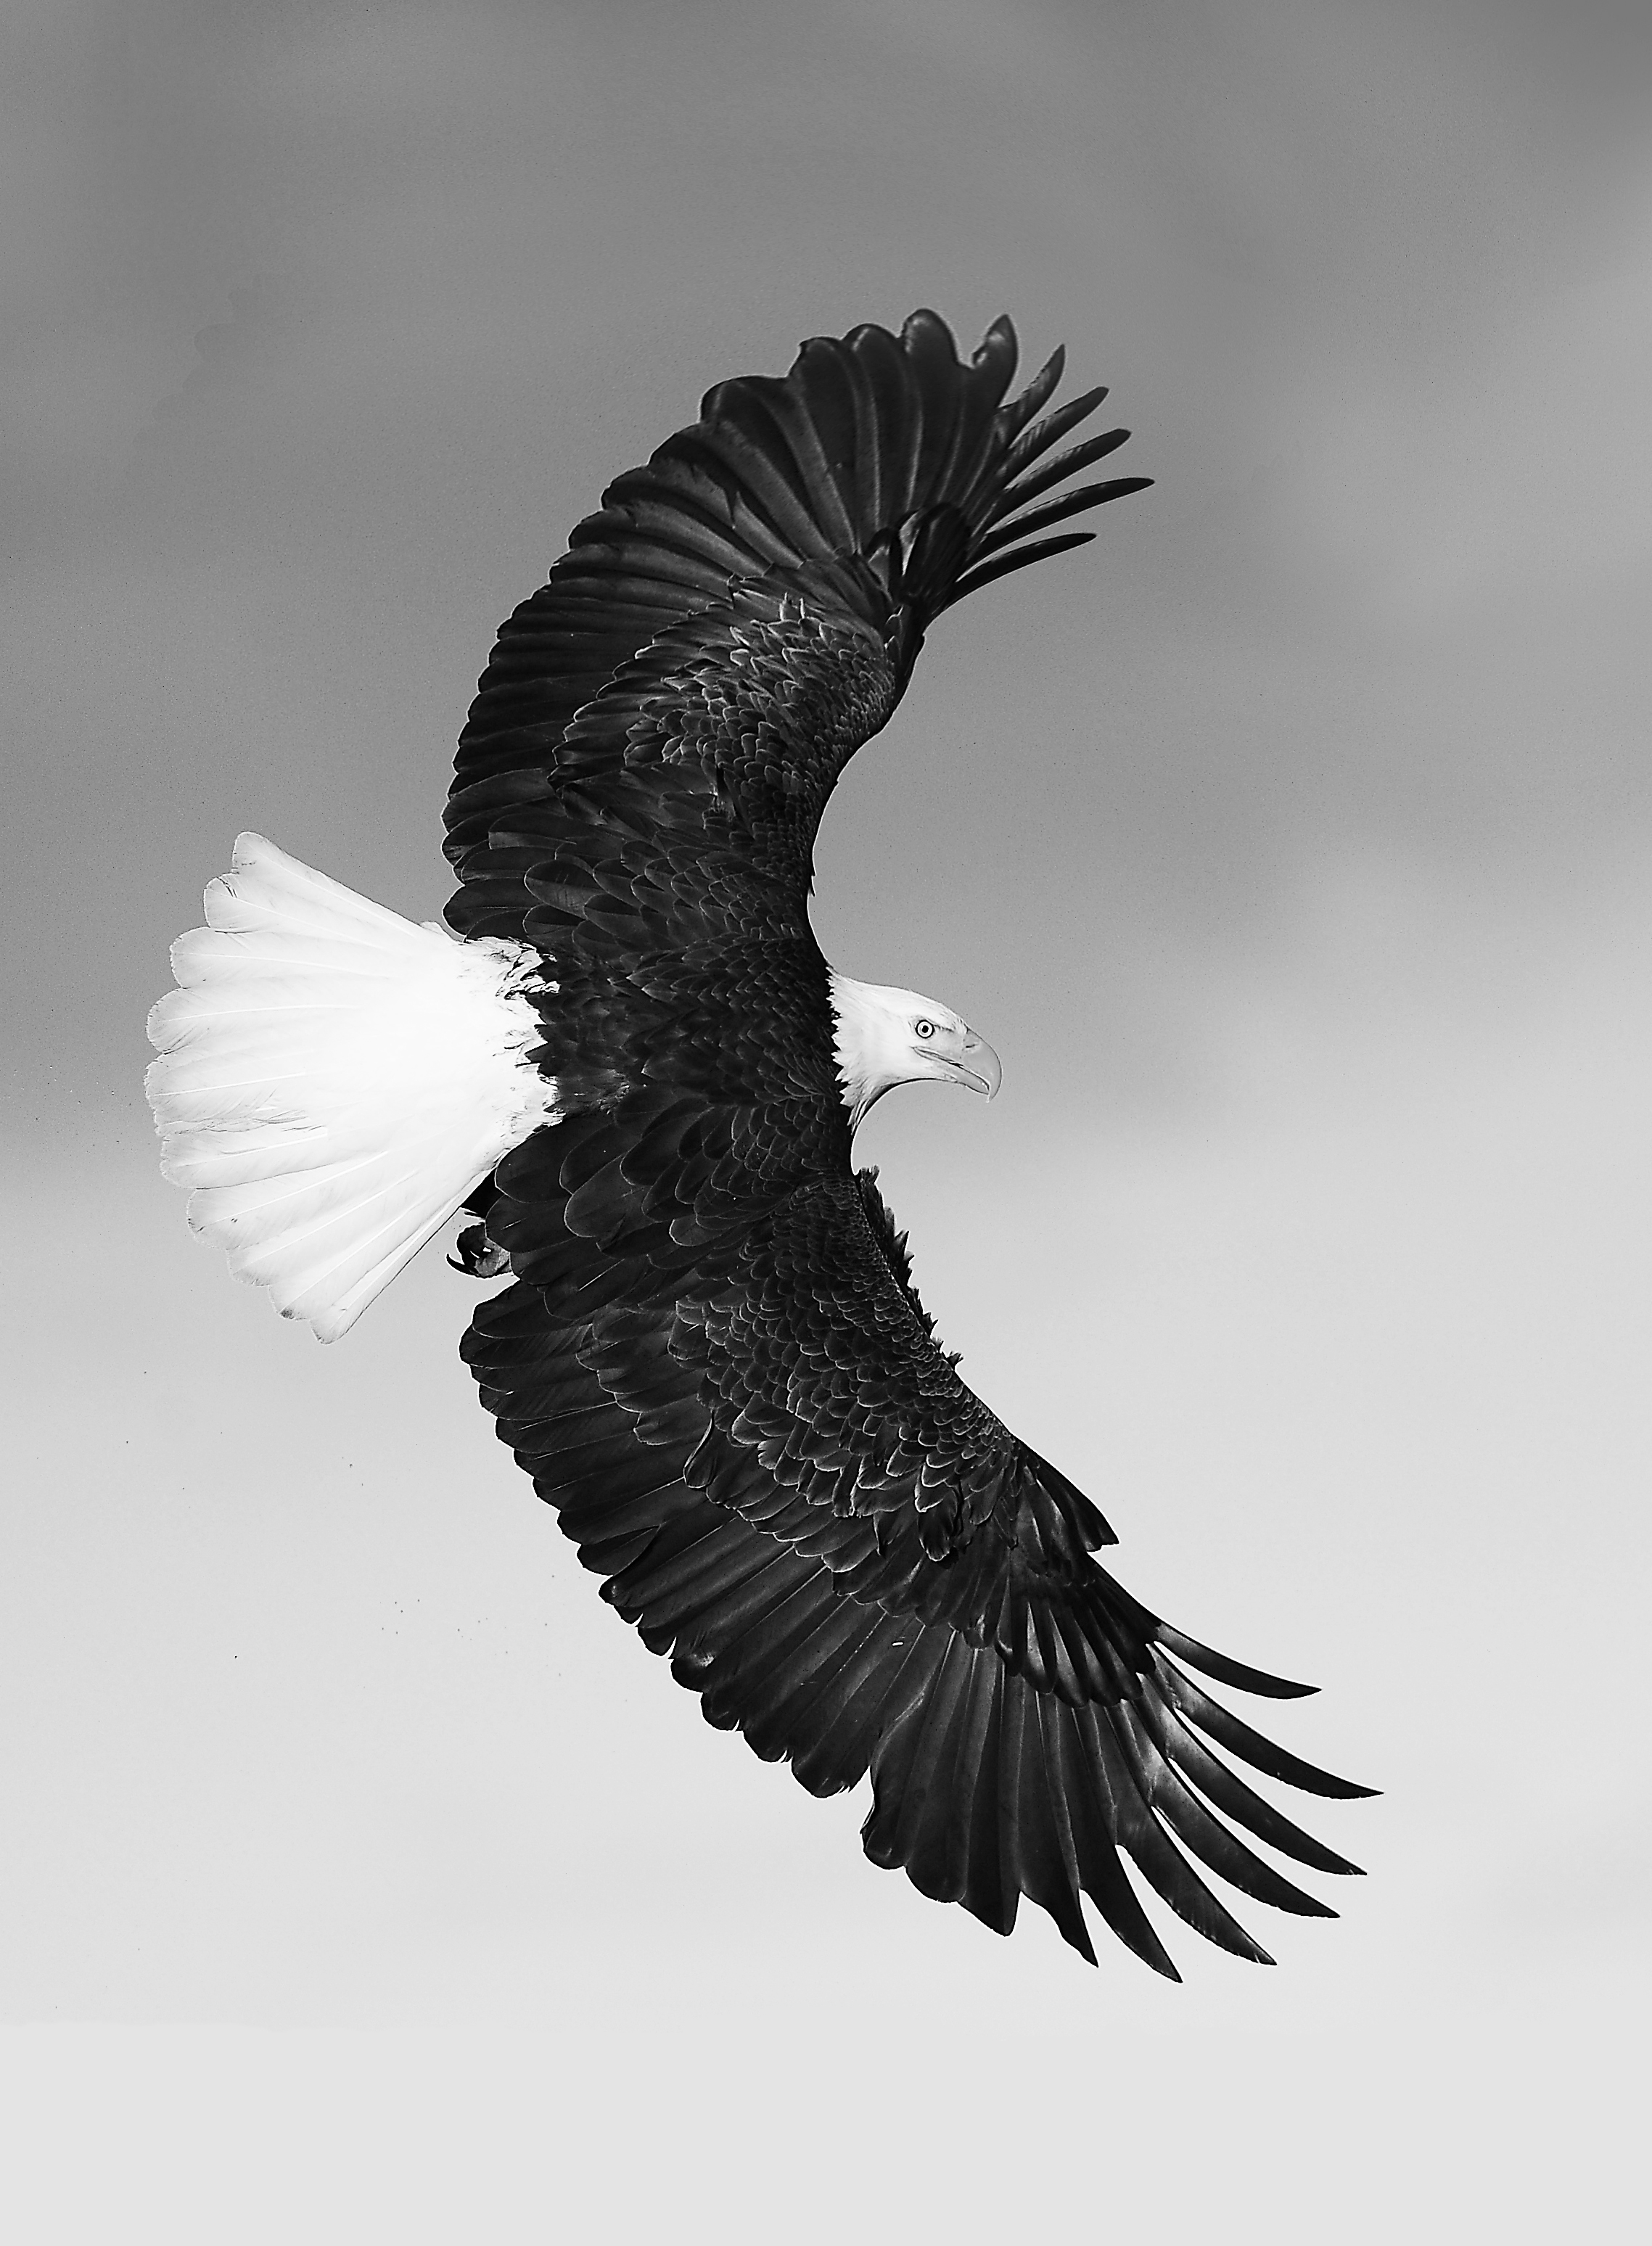 Bald eagle (1018) Best B and W